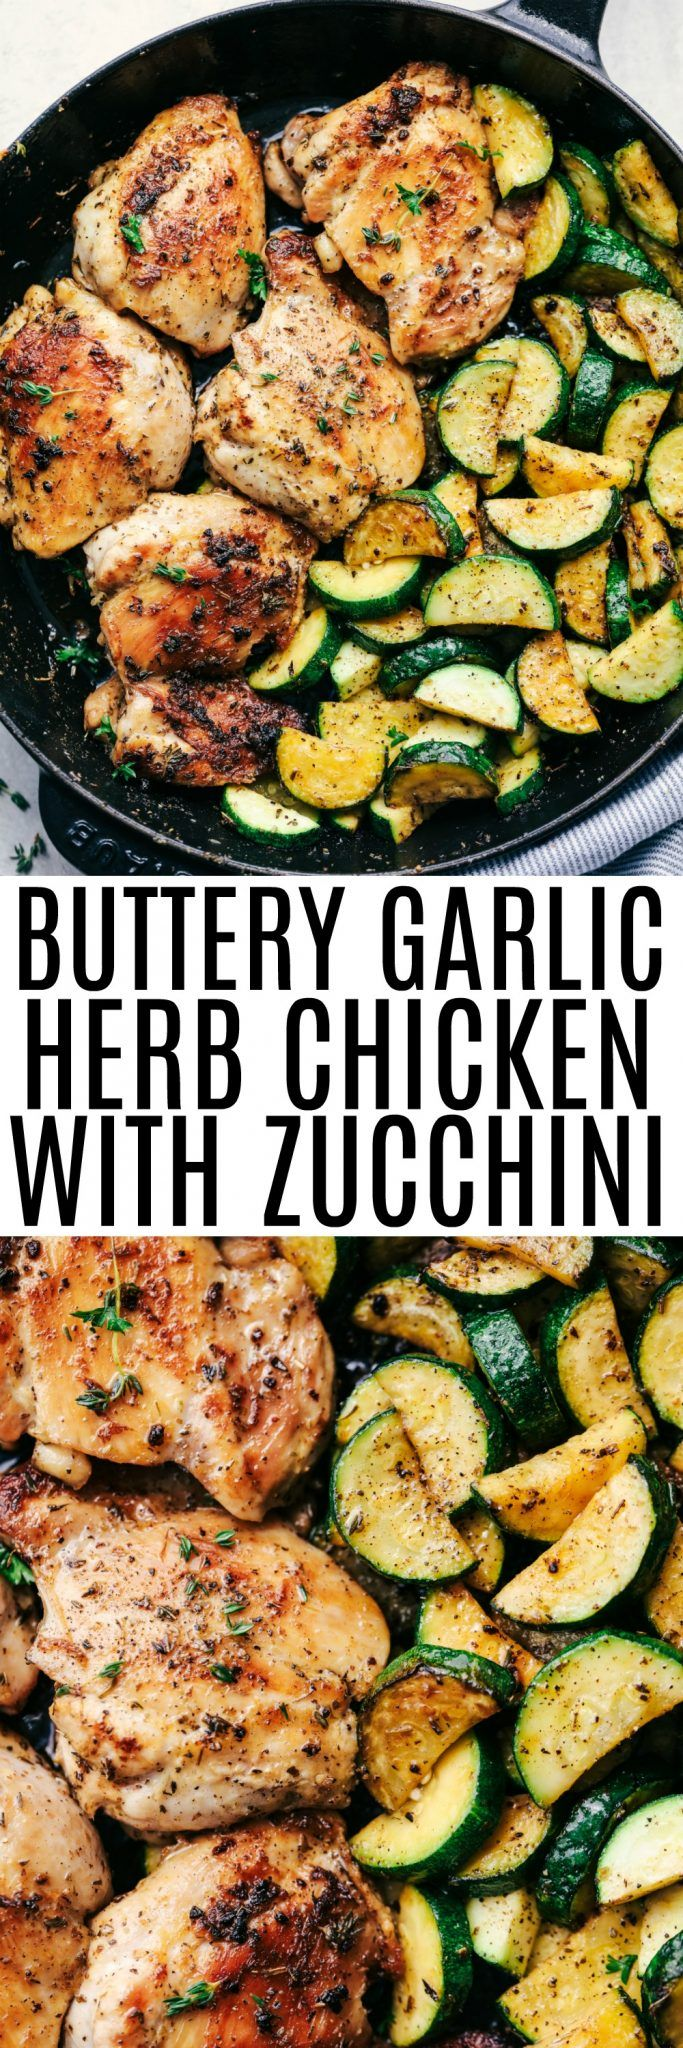 Buttery Garlic Herb Chicken with Zucchini is a easy 30 minute meal that has tender and juicy chicken cooked in a buttery garlic herb sauce with zucchini.  This dish is cooked with fresh herbs and is incredible!